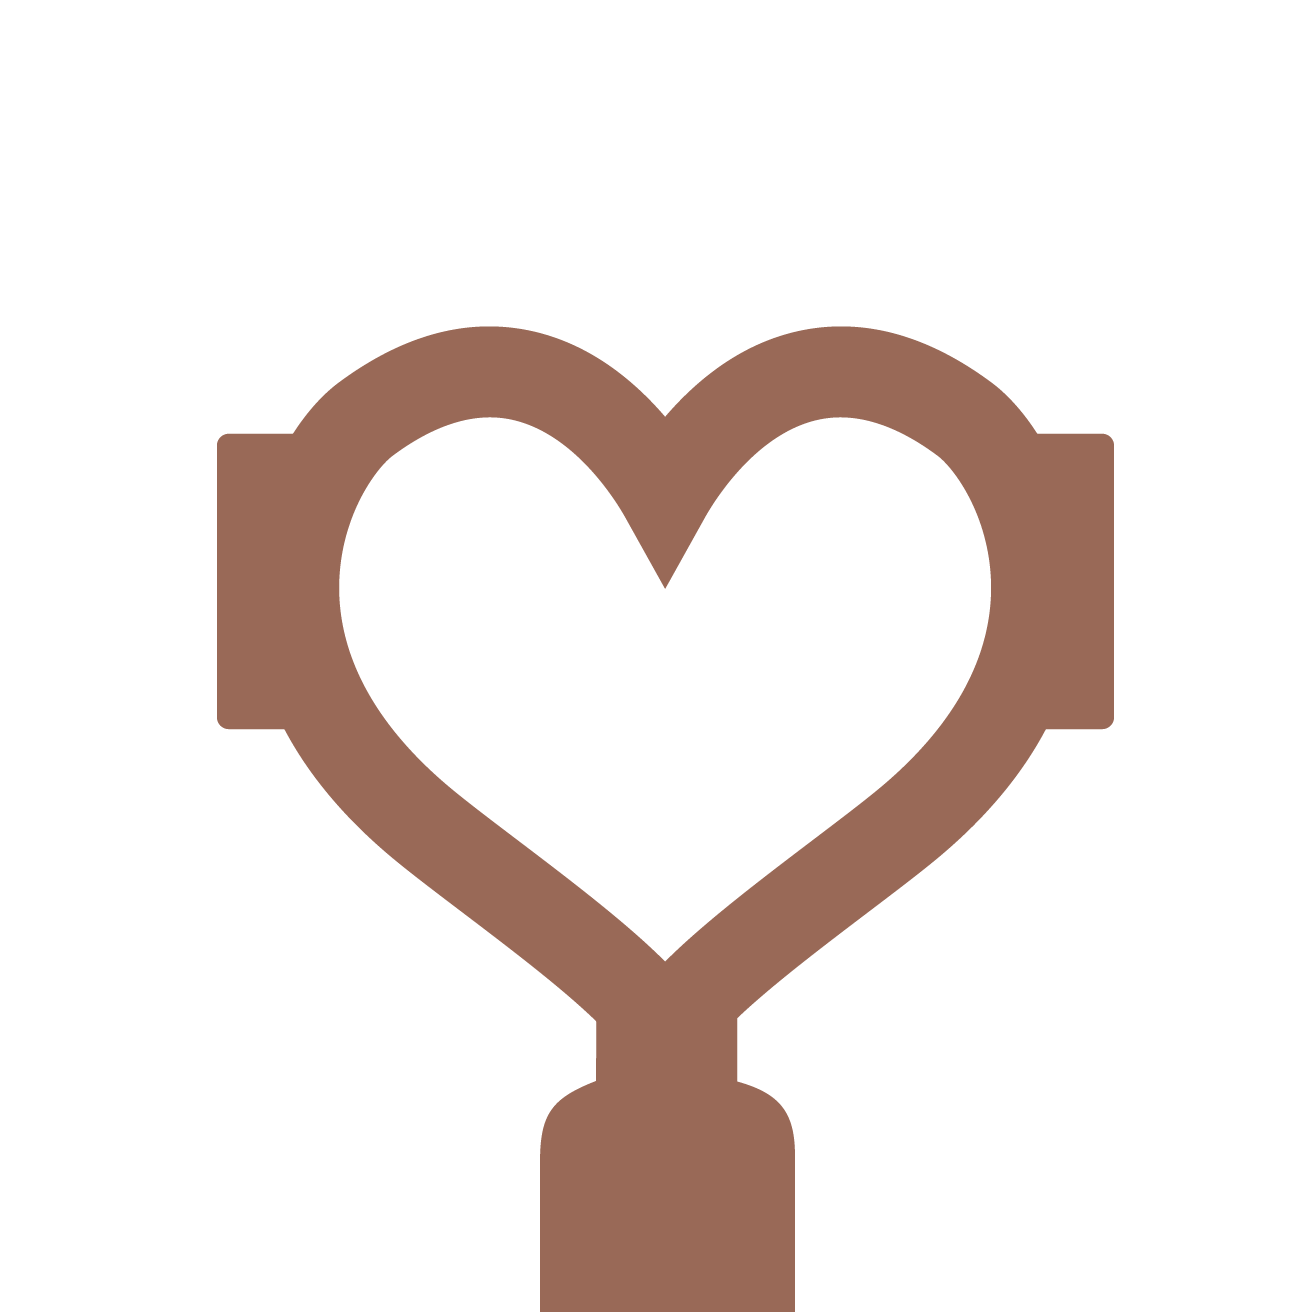 Moccamaster No 4 Filter Papers pack of 100